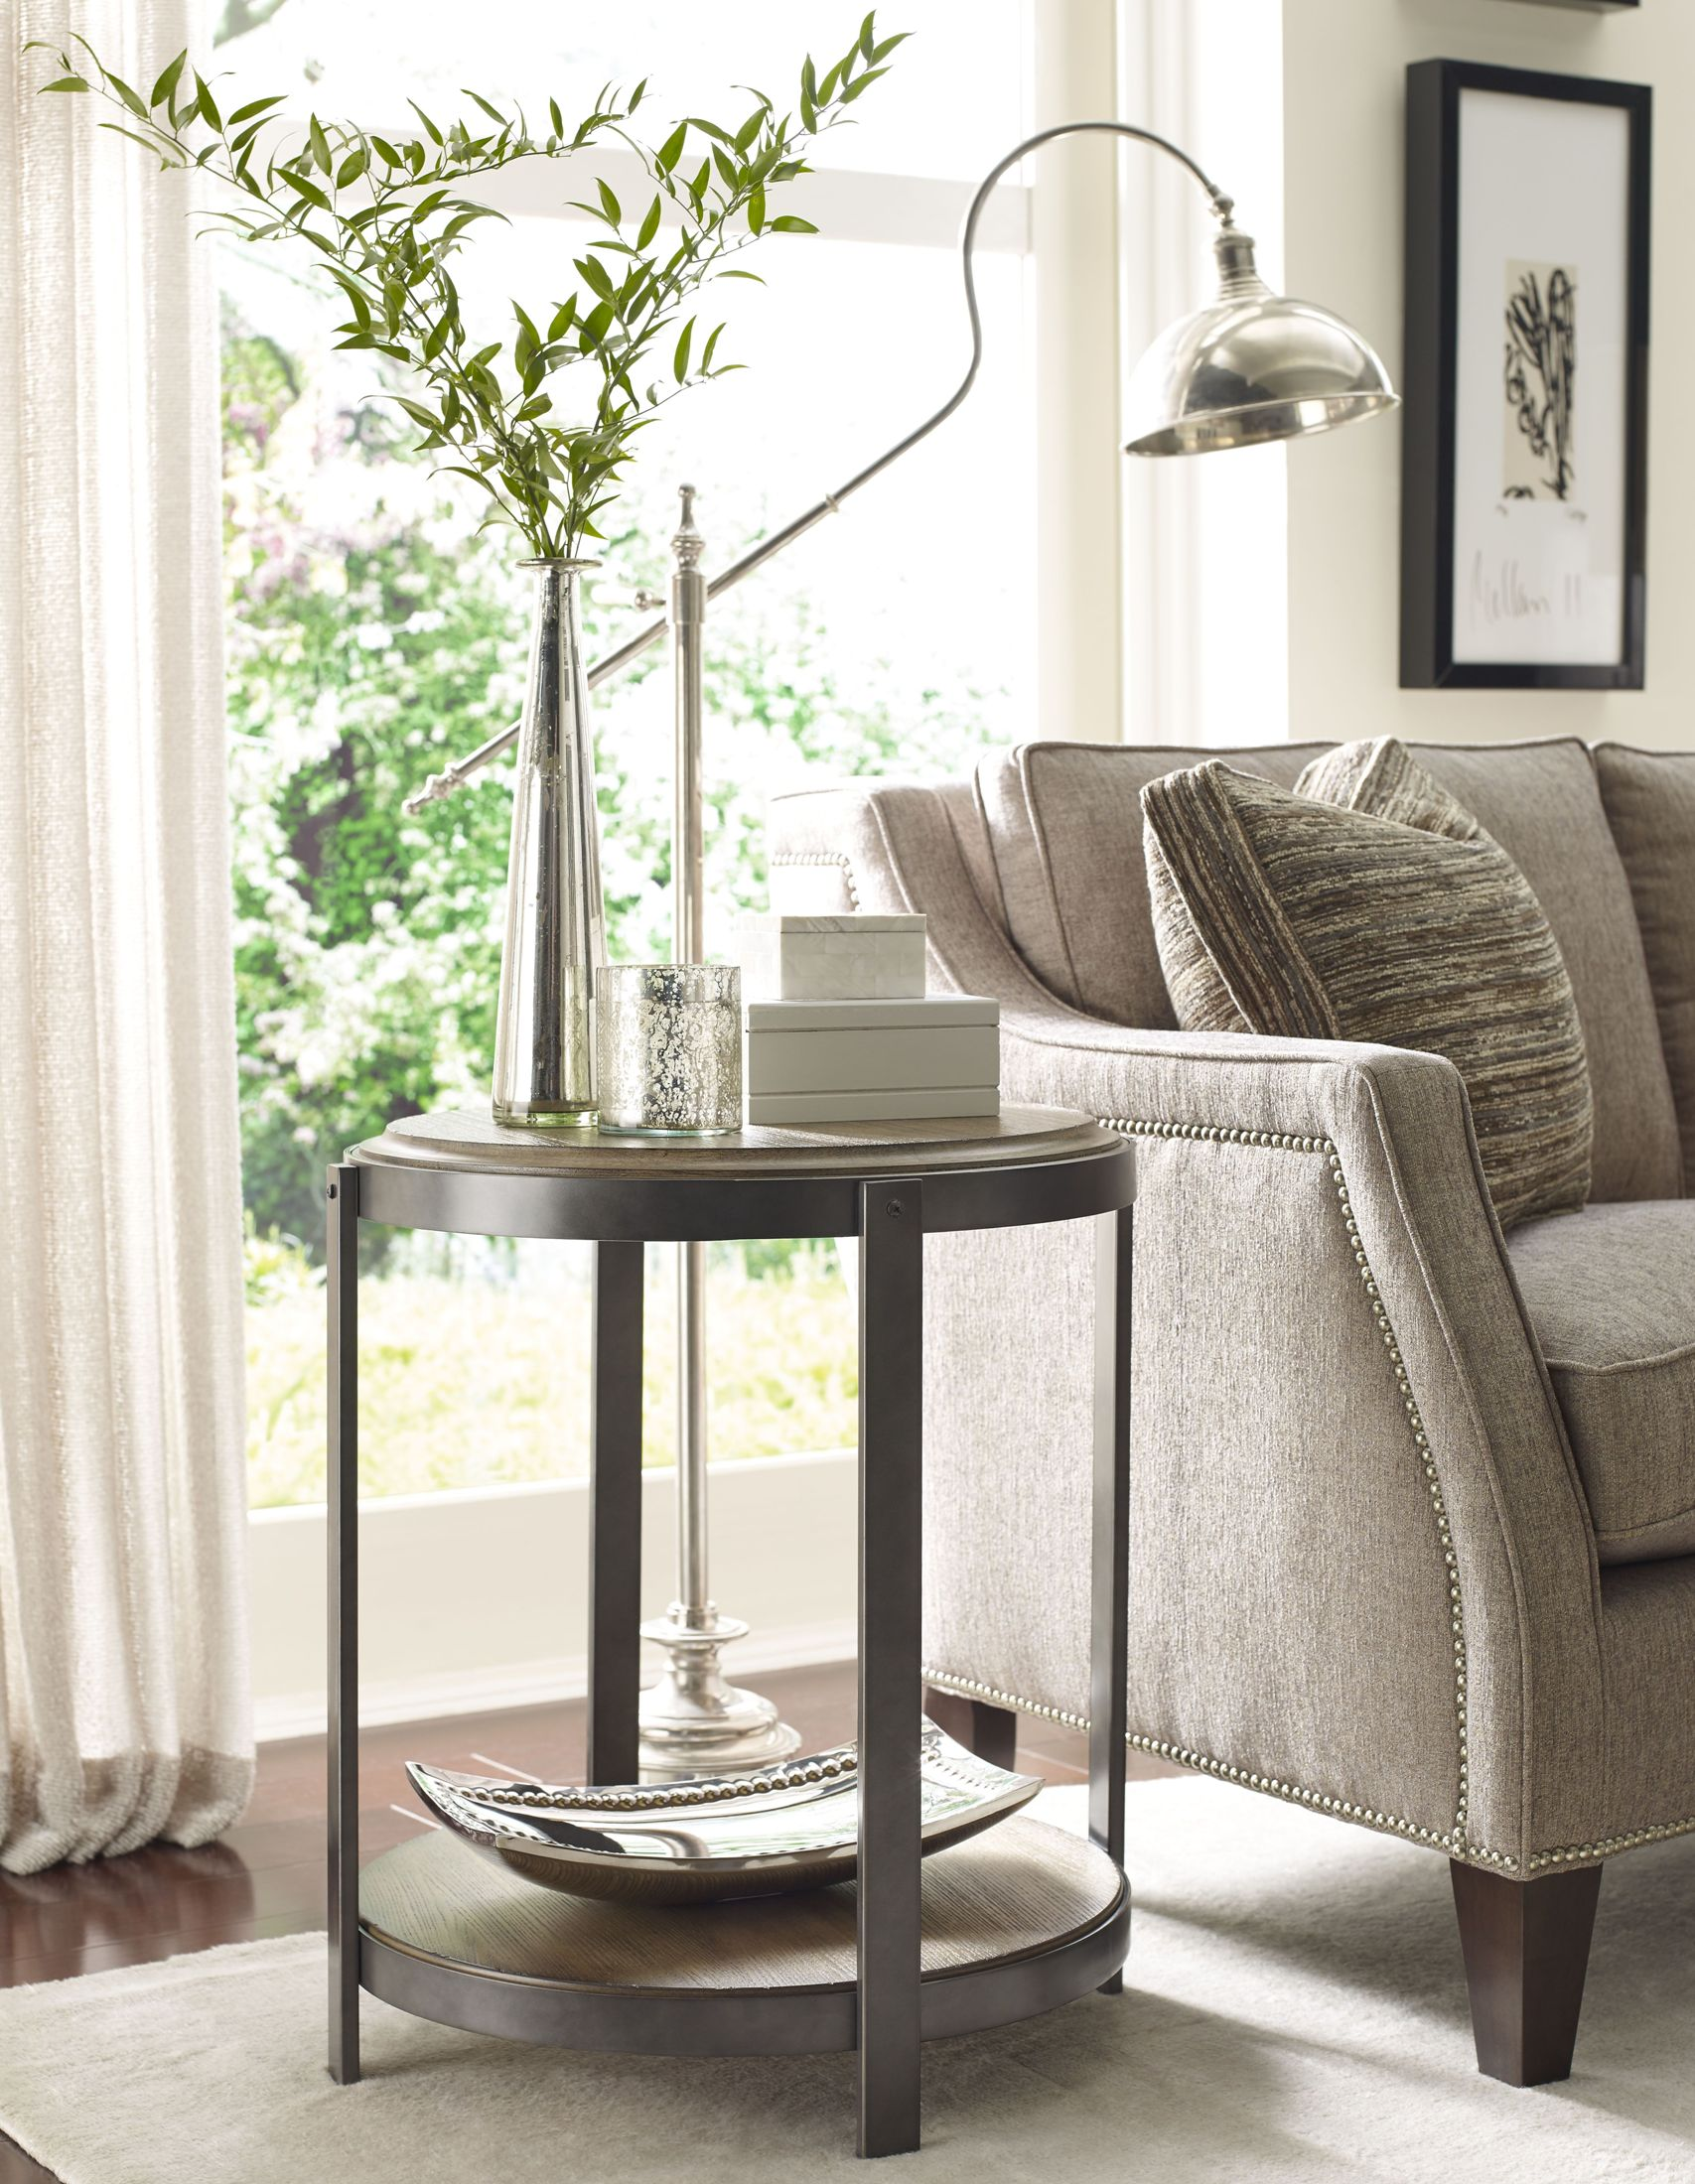 hammary evoke brown and gray round accent table collection patio serving small living room decorating ideas outdoor top covers trestle pine uttermost laton mirrored wrought iron